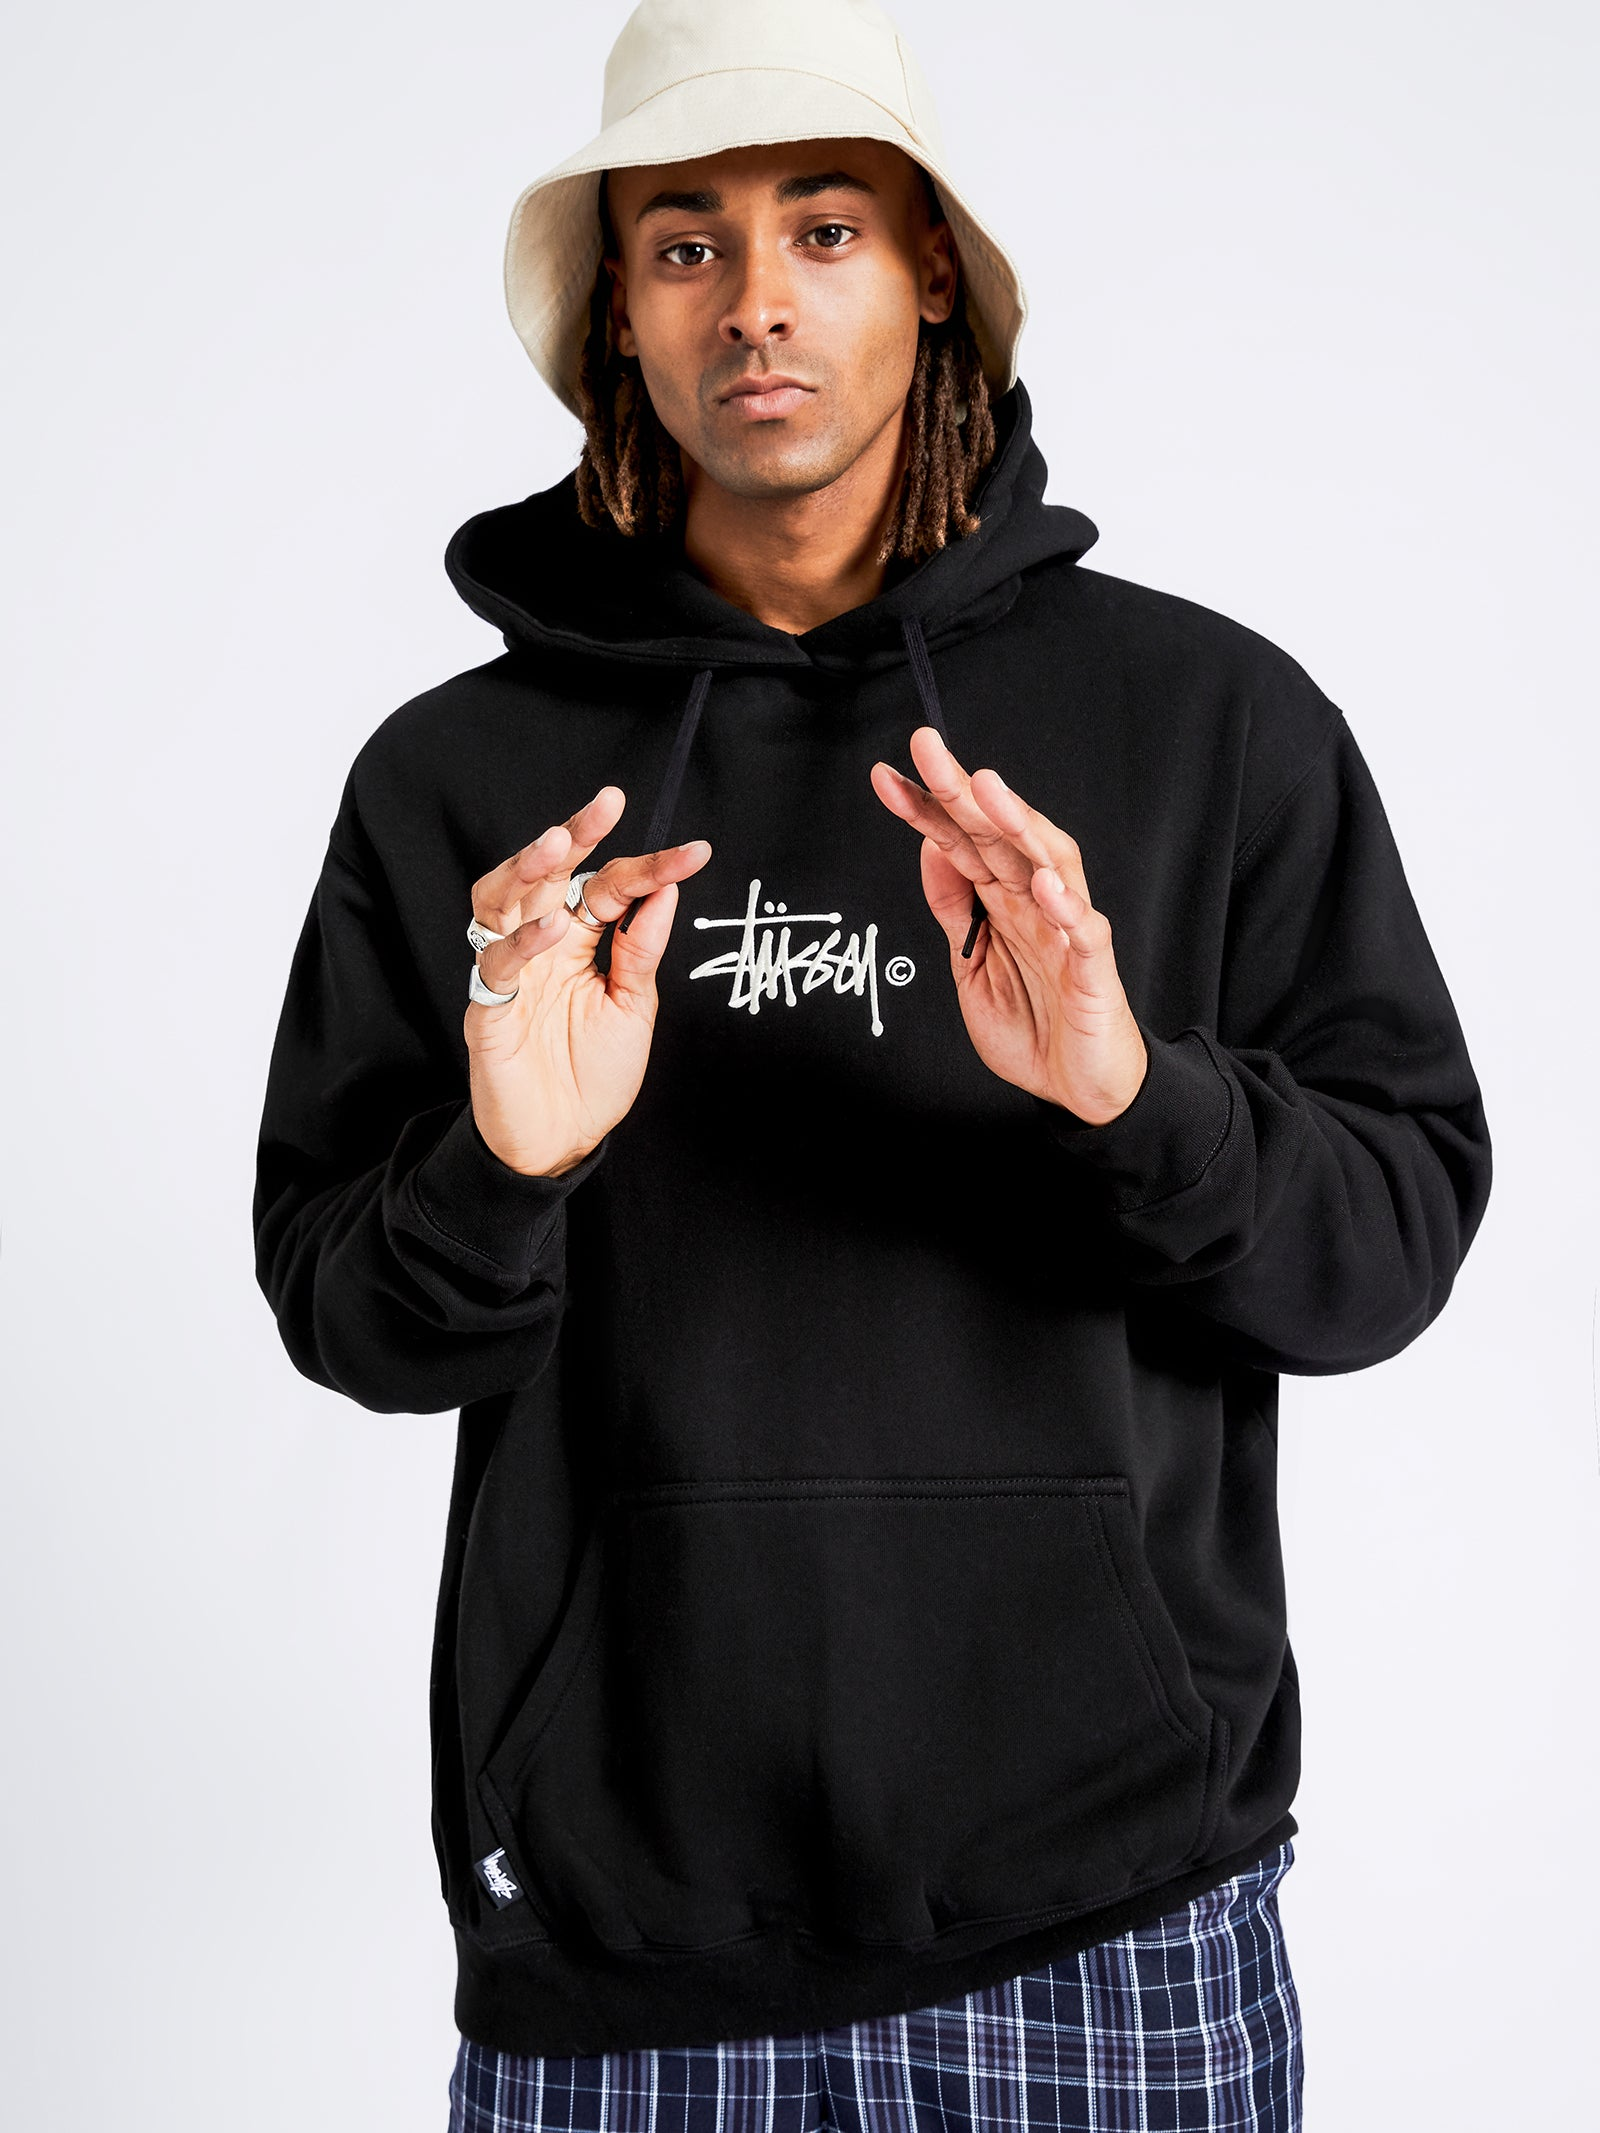 Graffiti Hoodie in Black